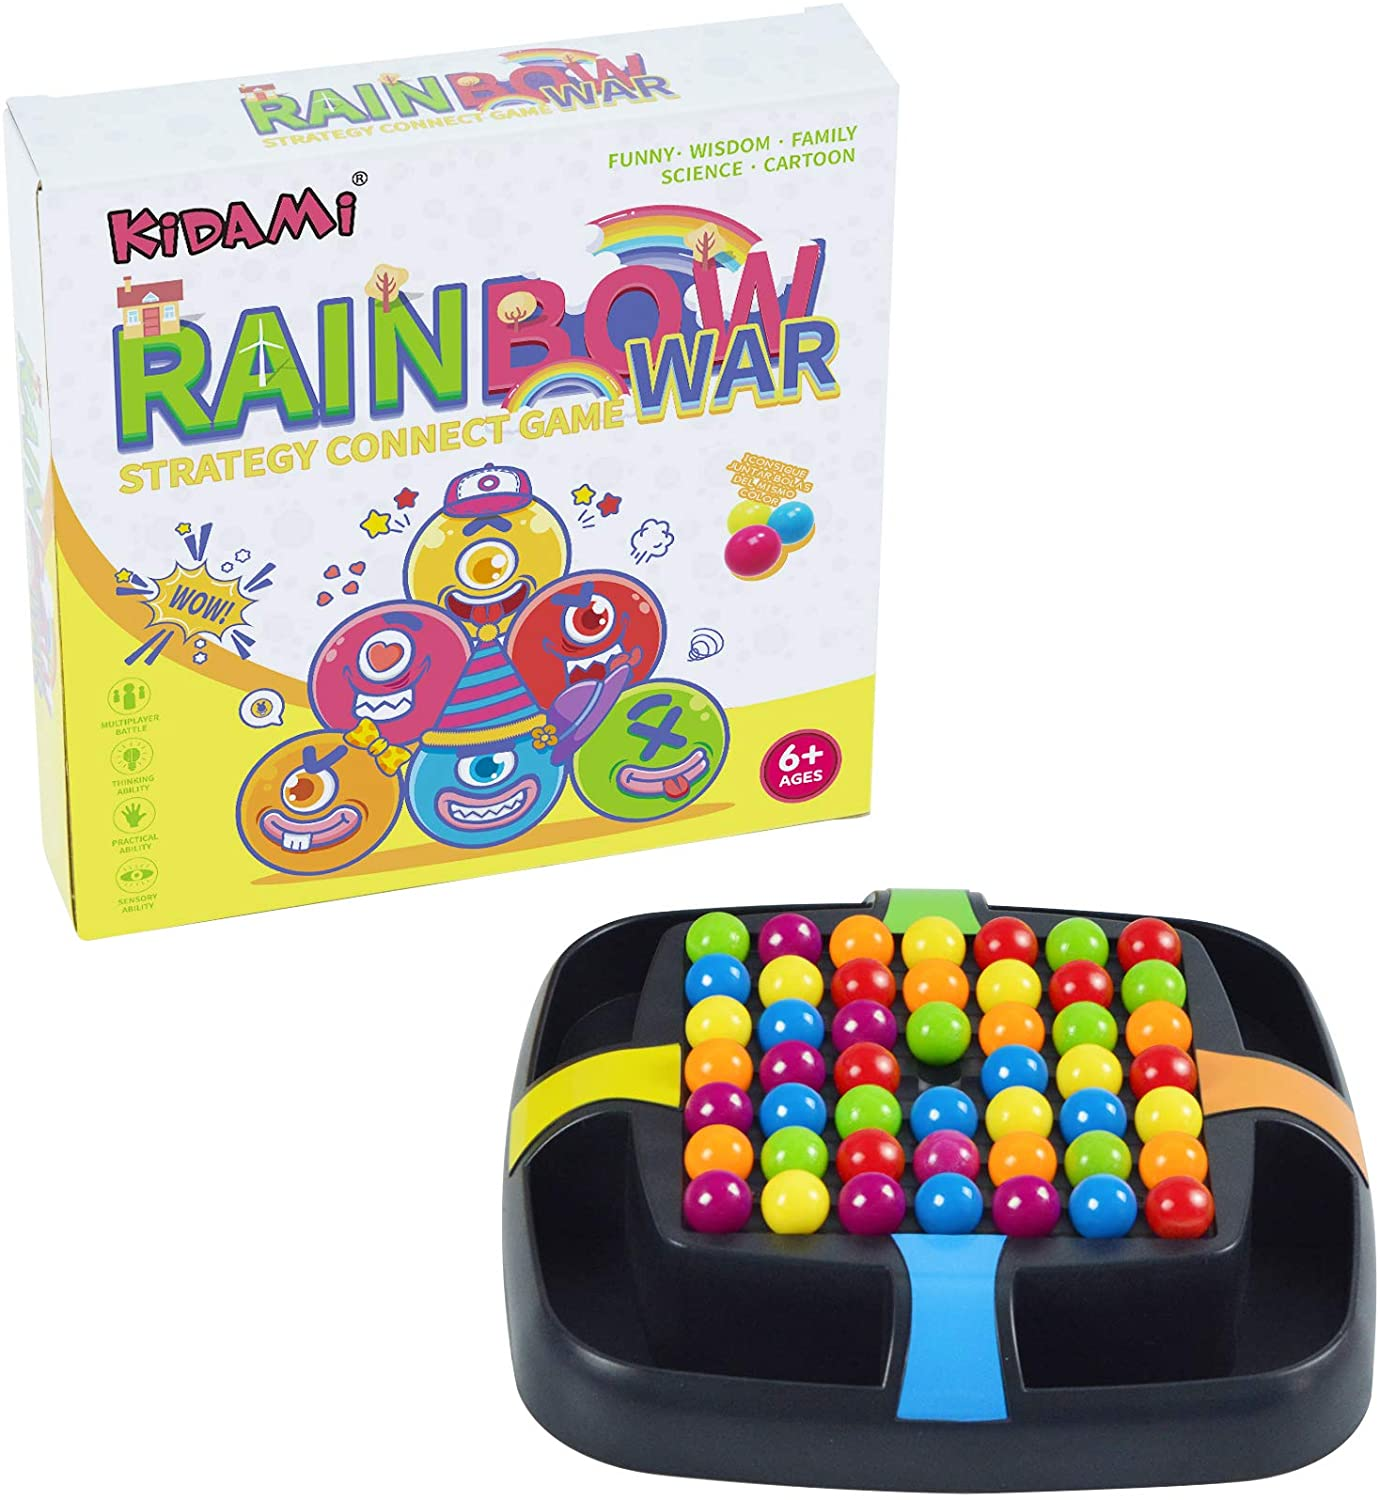 KIDAMI Strategy Connect Game, Travel Game, Line Up Colorful Balls, Brain Tease, Lightweight and Portable, Best Gift for Kids and Children ( Rainbow War )